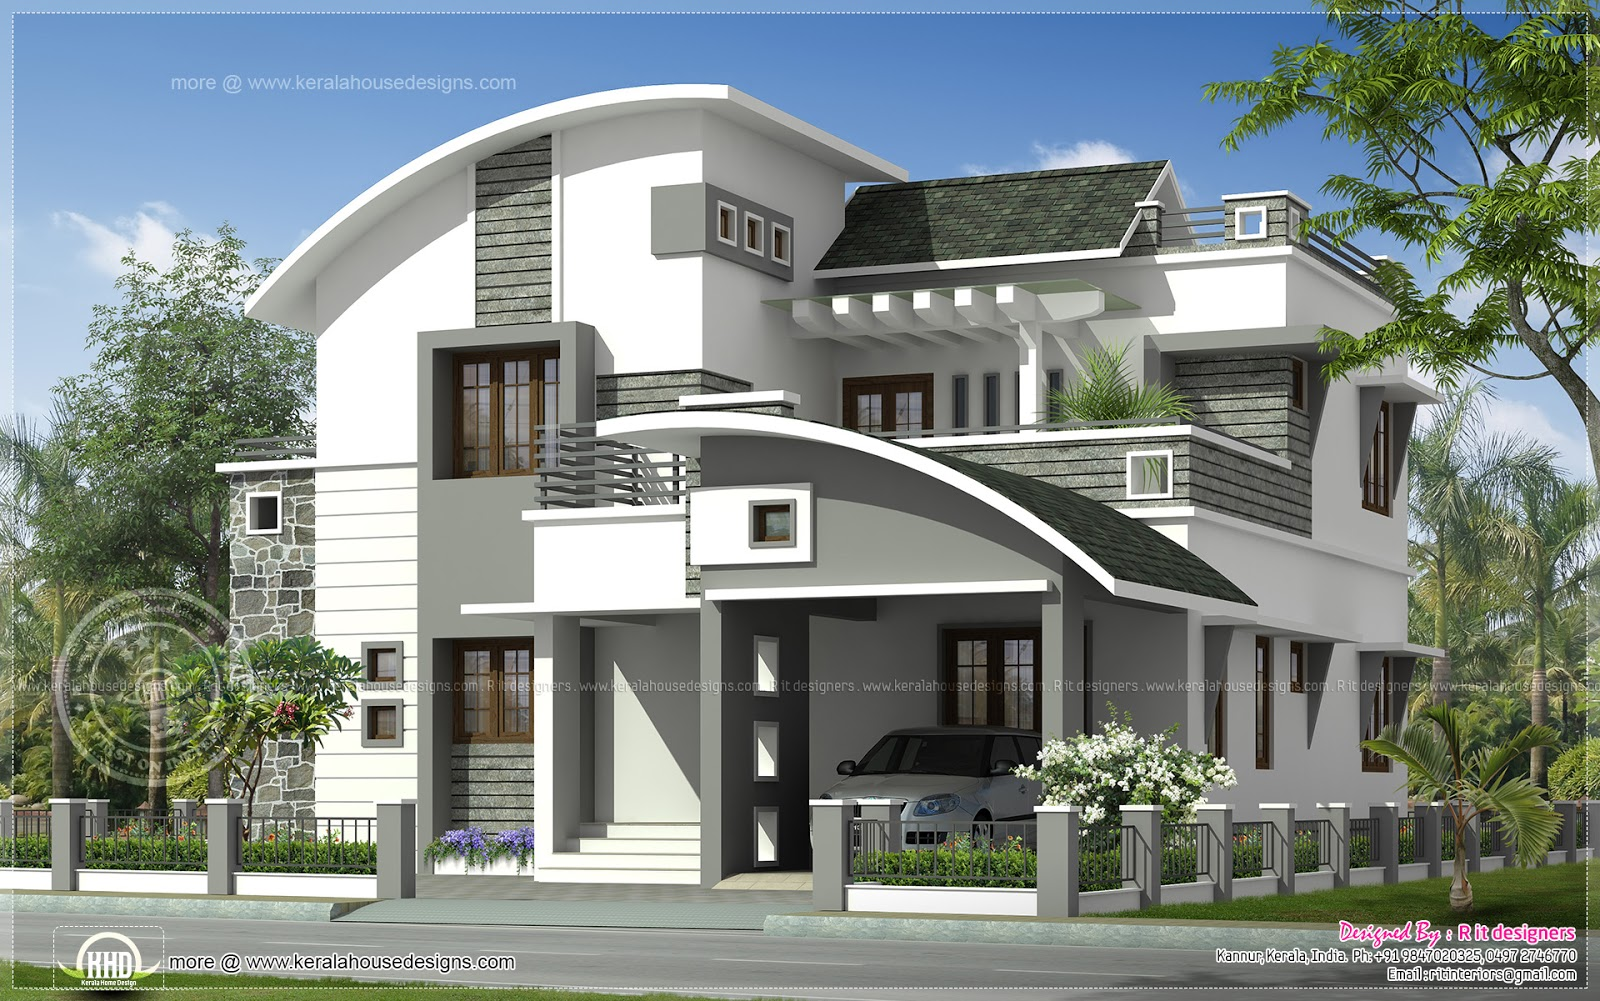 sq ft house plans